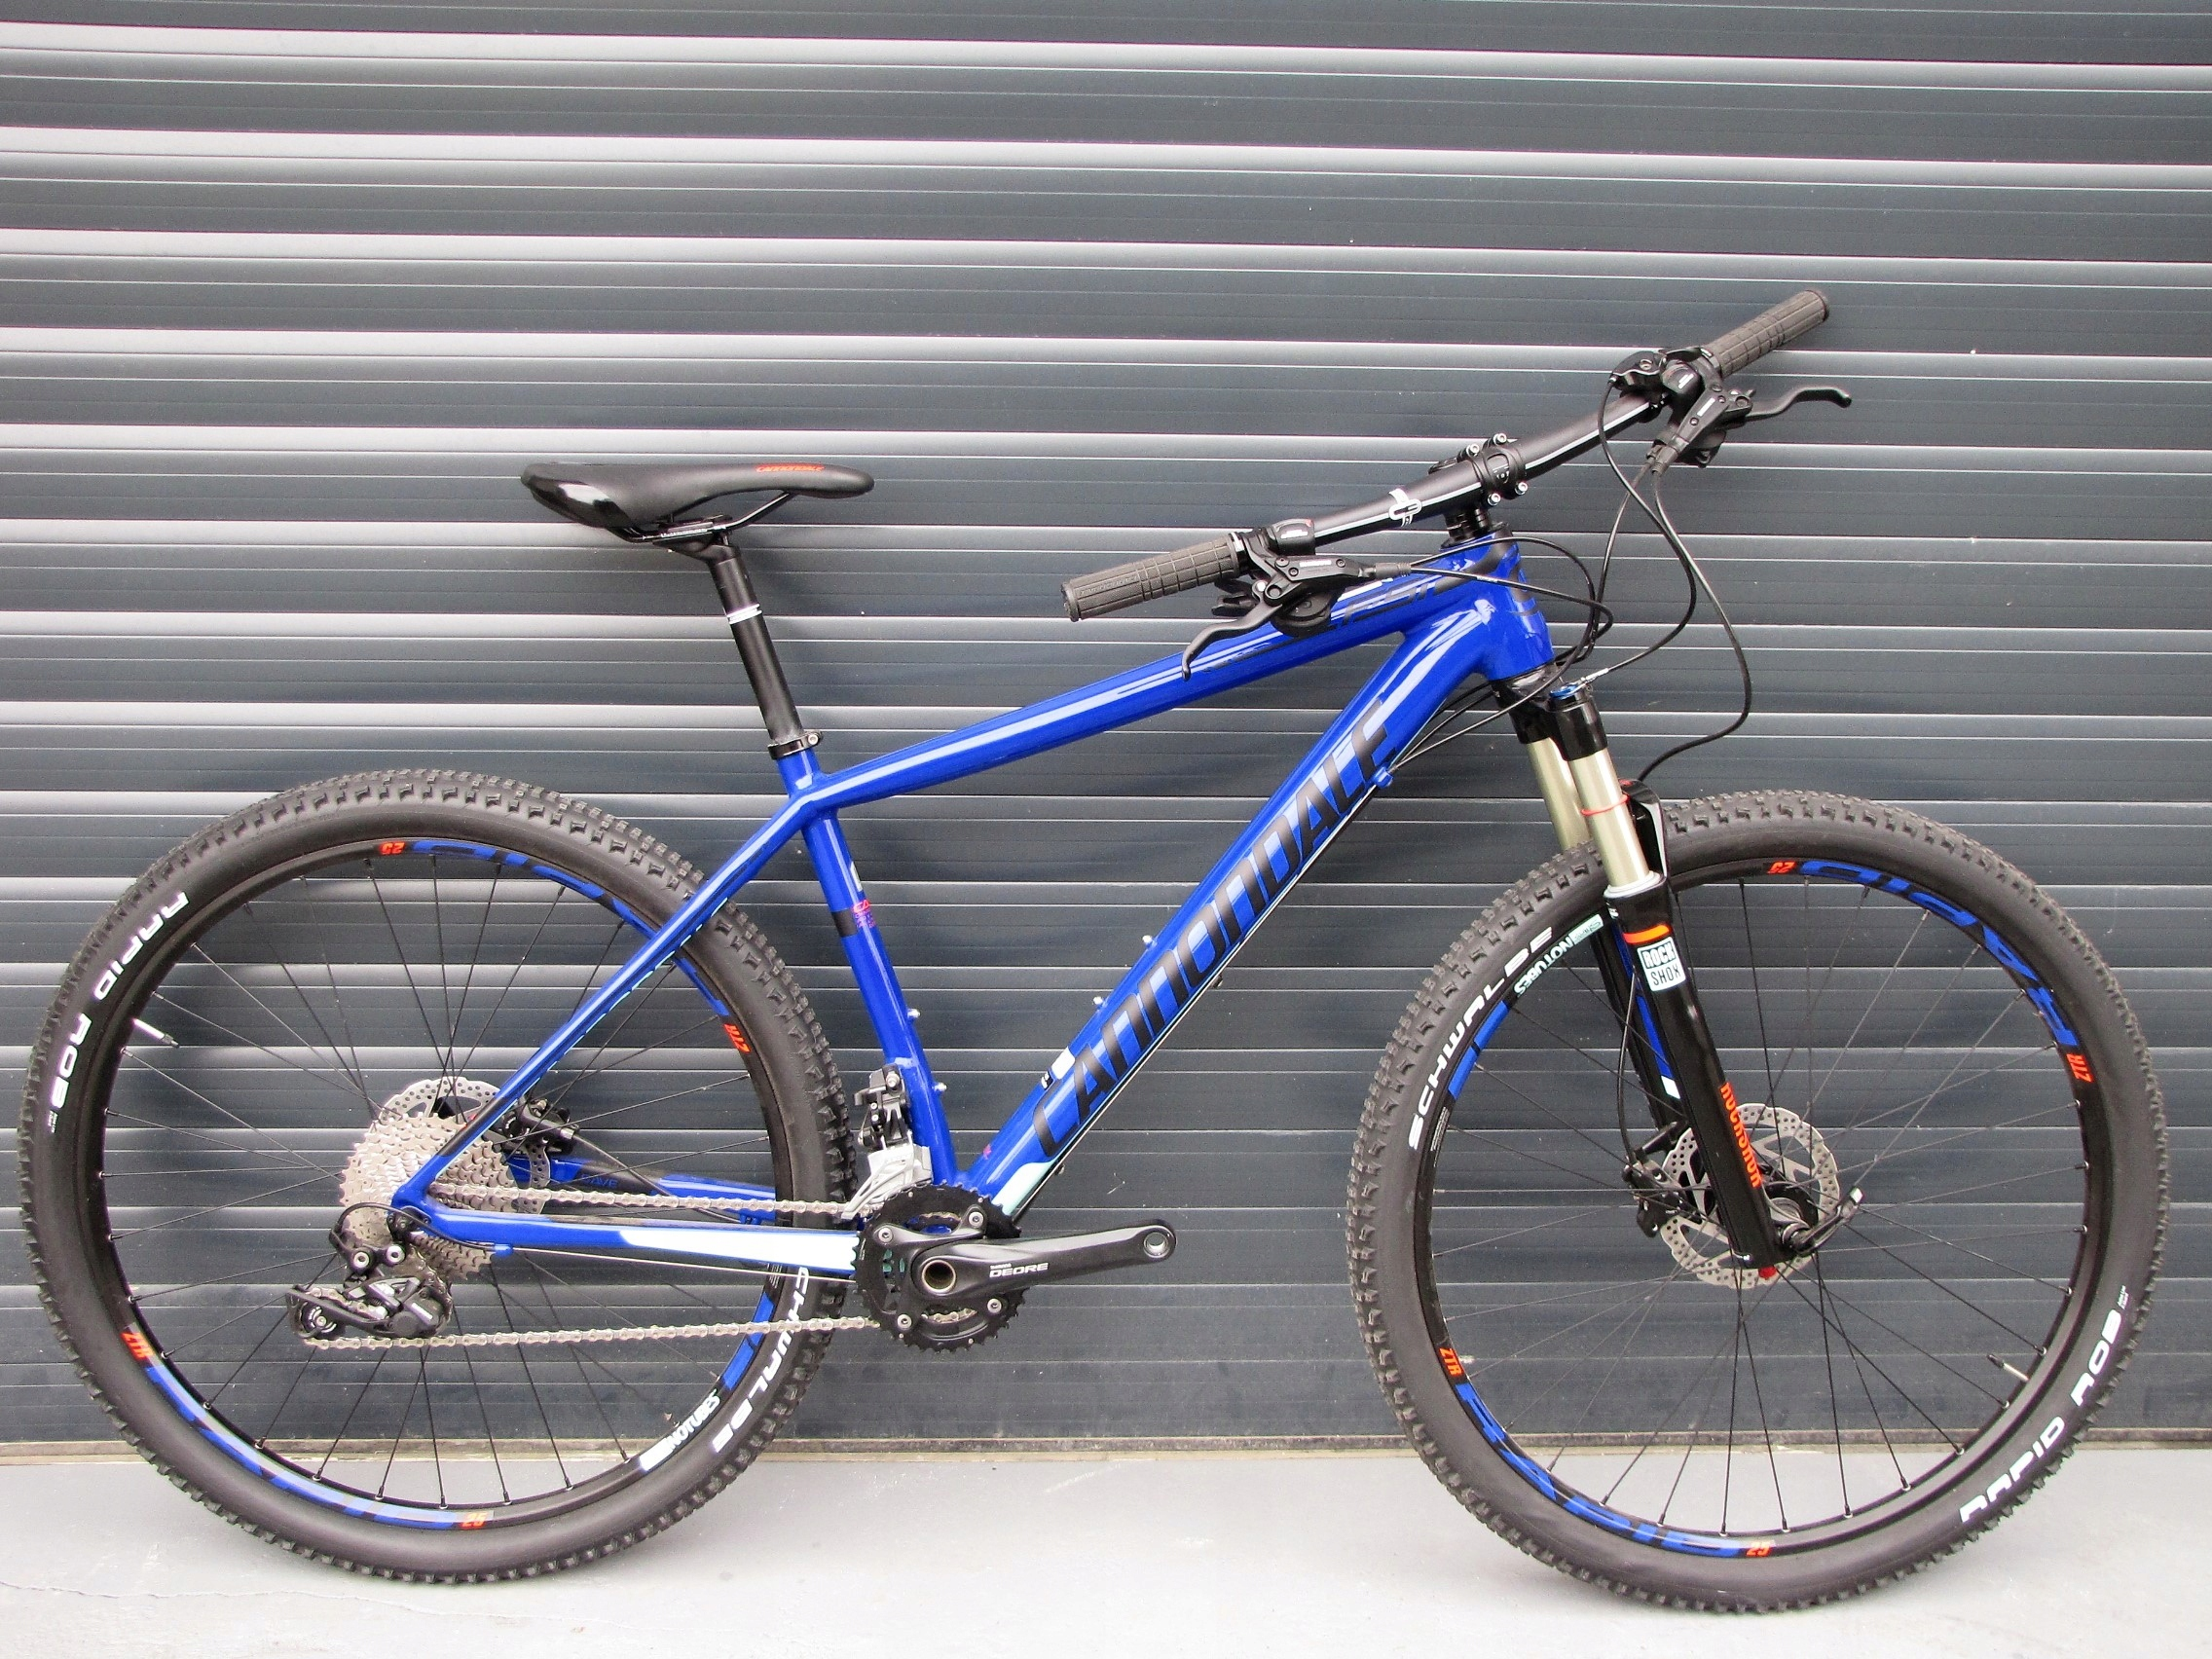 NOWY!! CANNONDALE F F-SI 27,5 ! RECON, XT! TARCZE